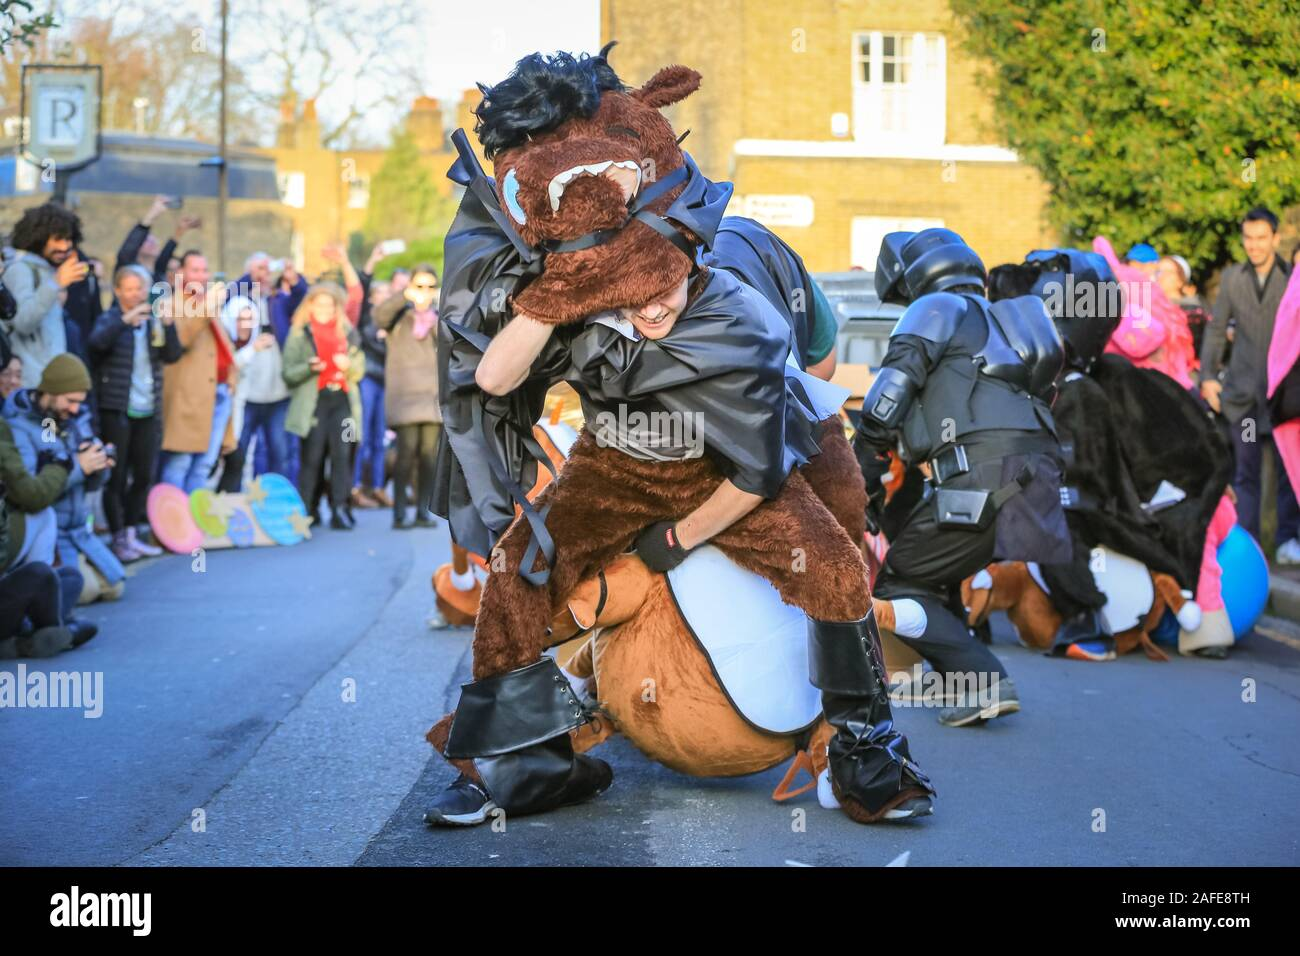 Star Wars Pantomime Horse Race High Resolution Stock Photography And Images Alamy